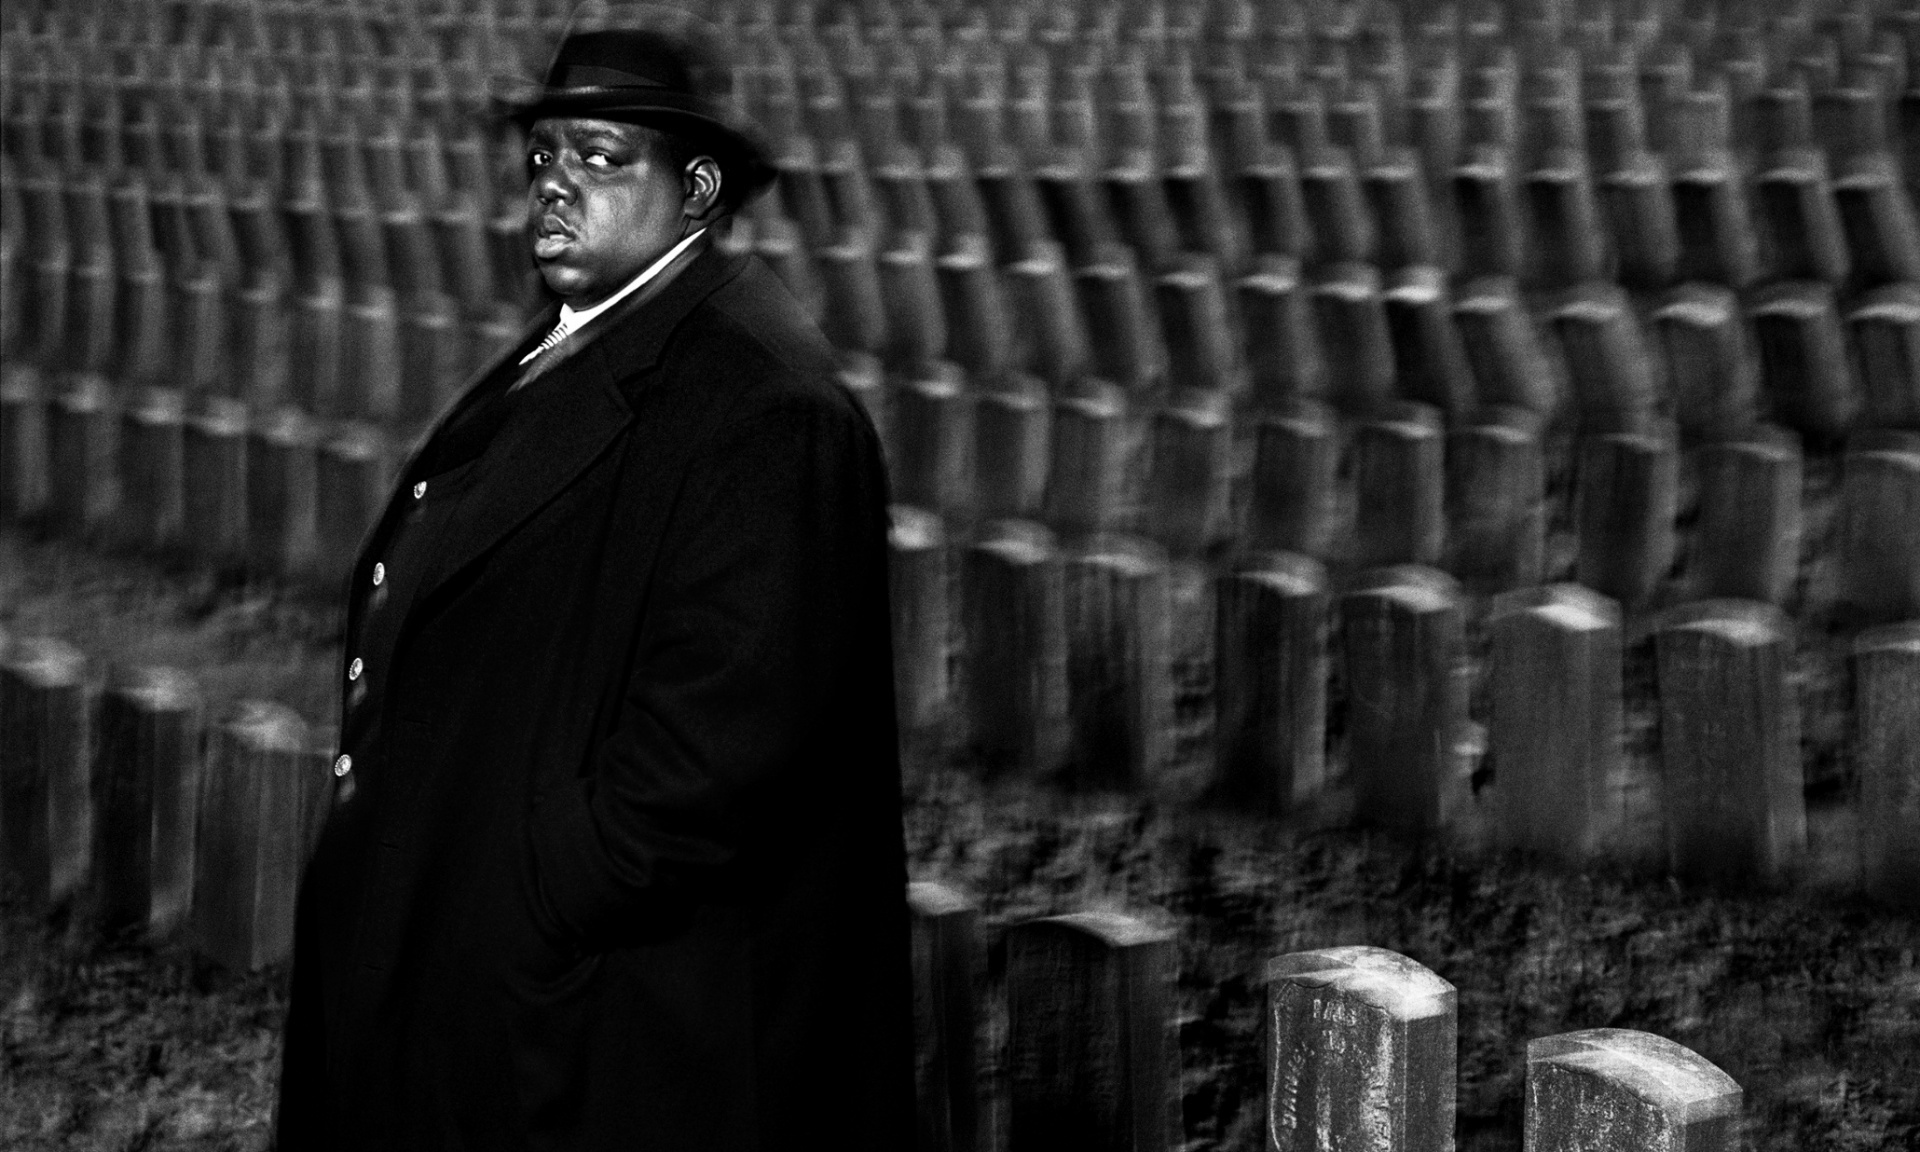 The Notorious B.I.G Background